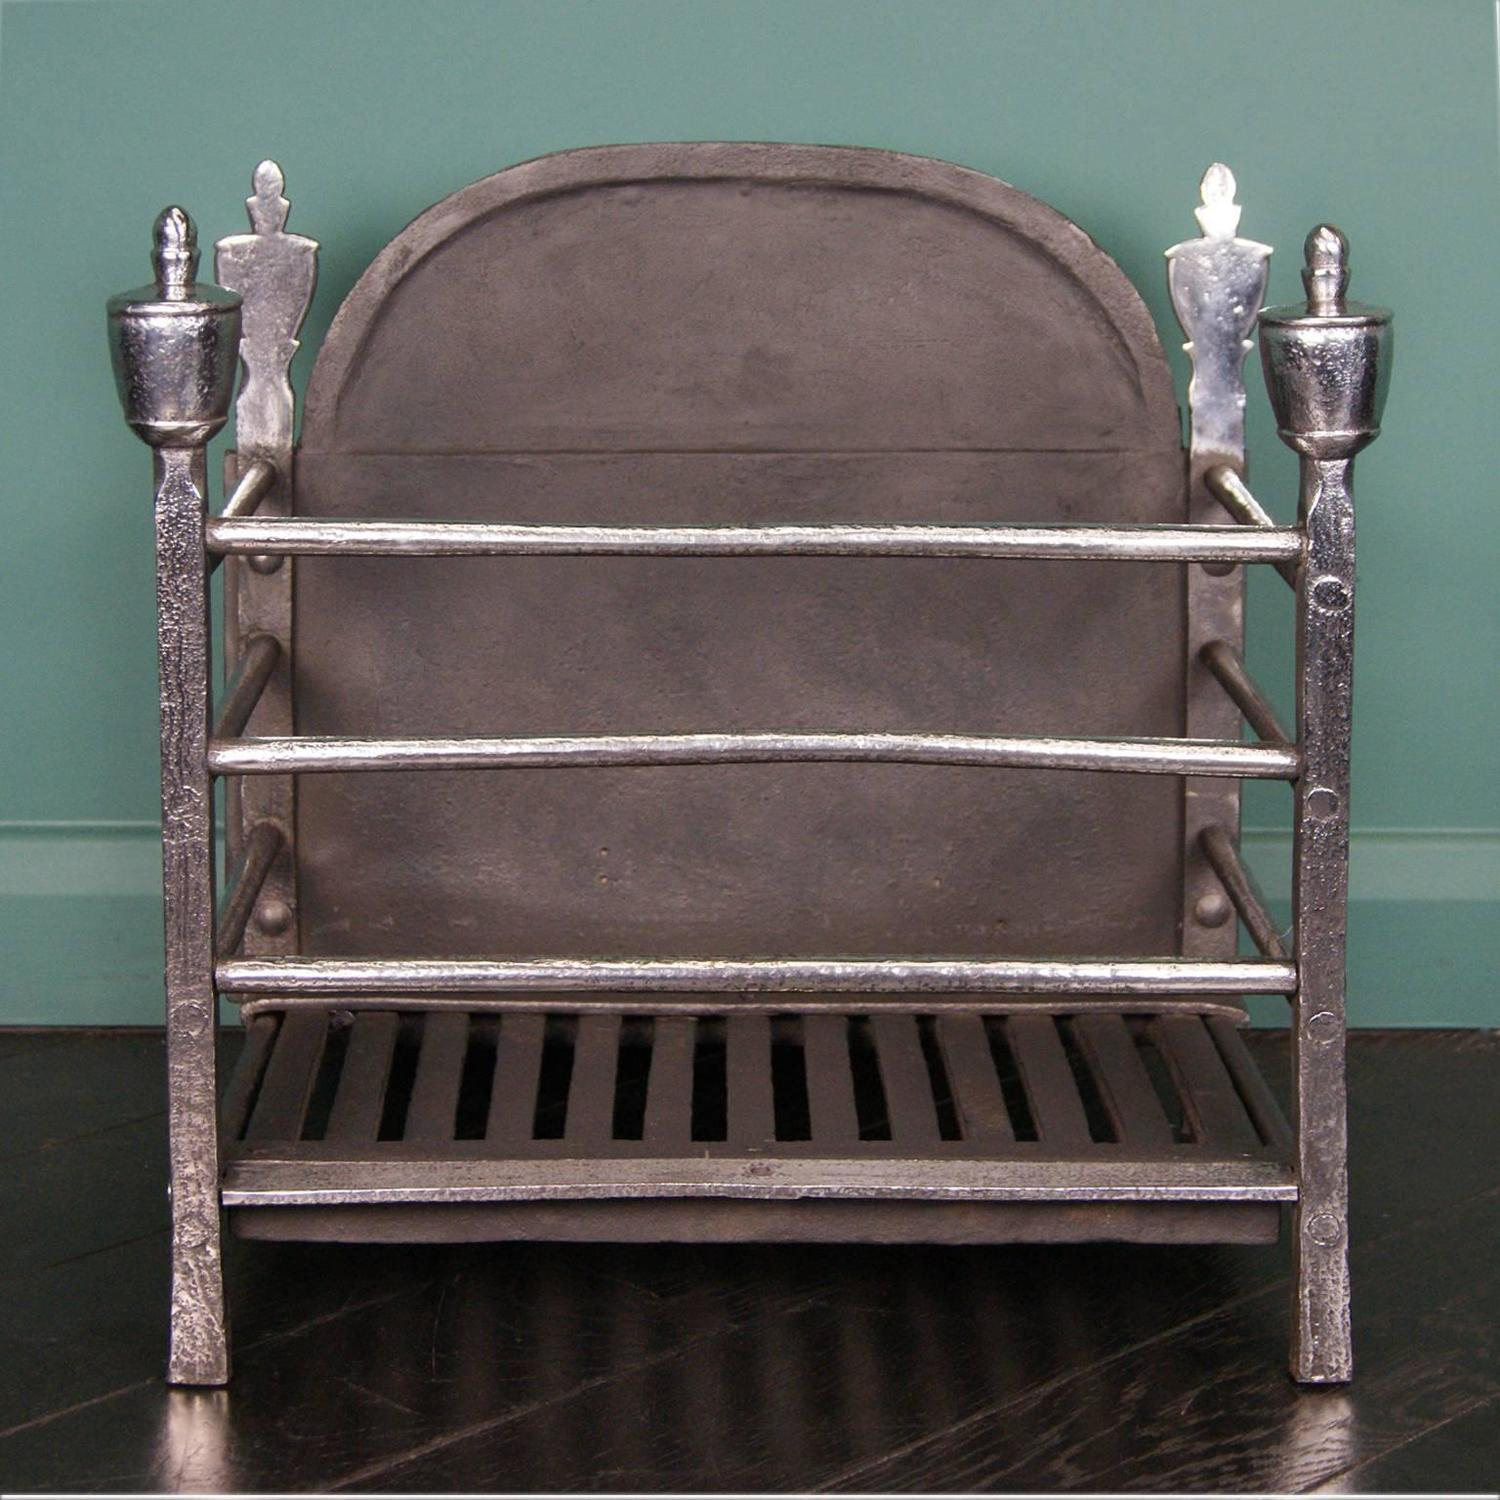 Polished Wrought Railed Fire Basket For Sale At 1stdibs